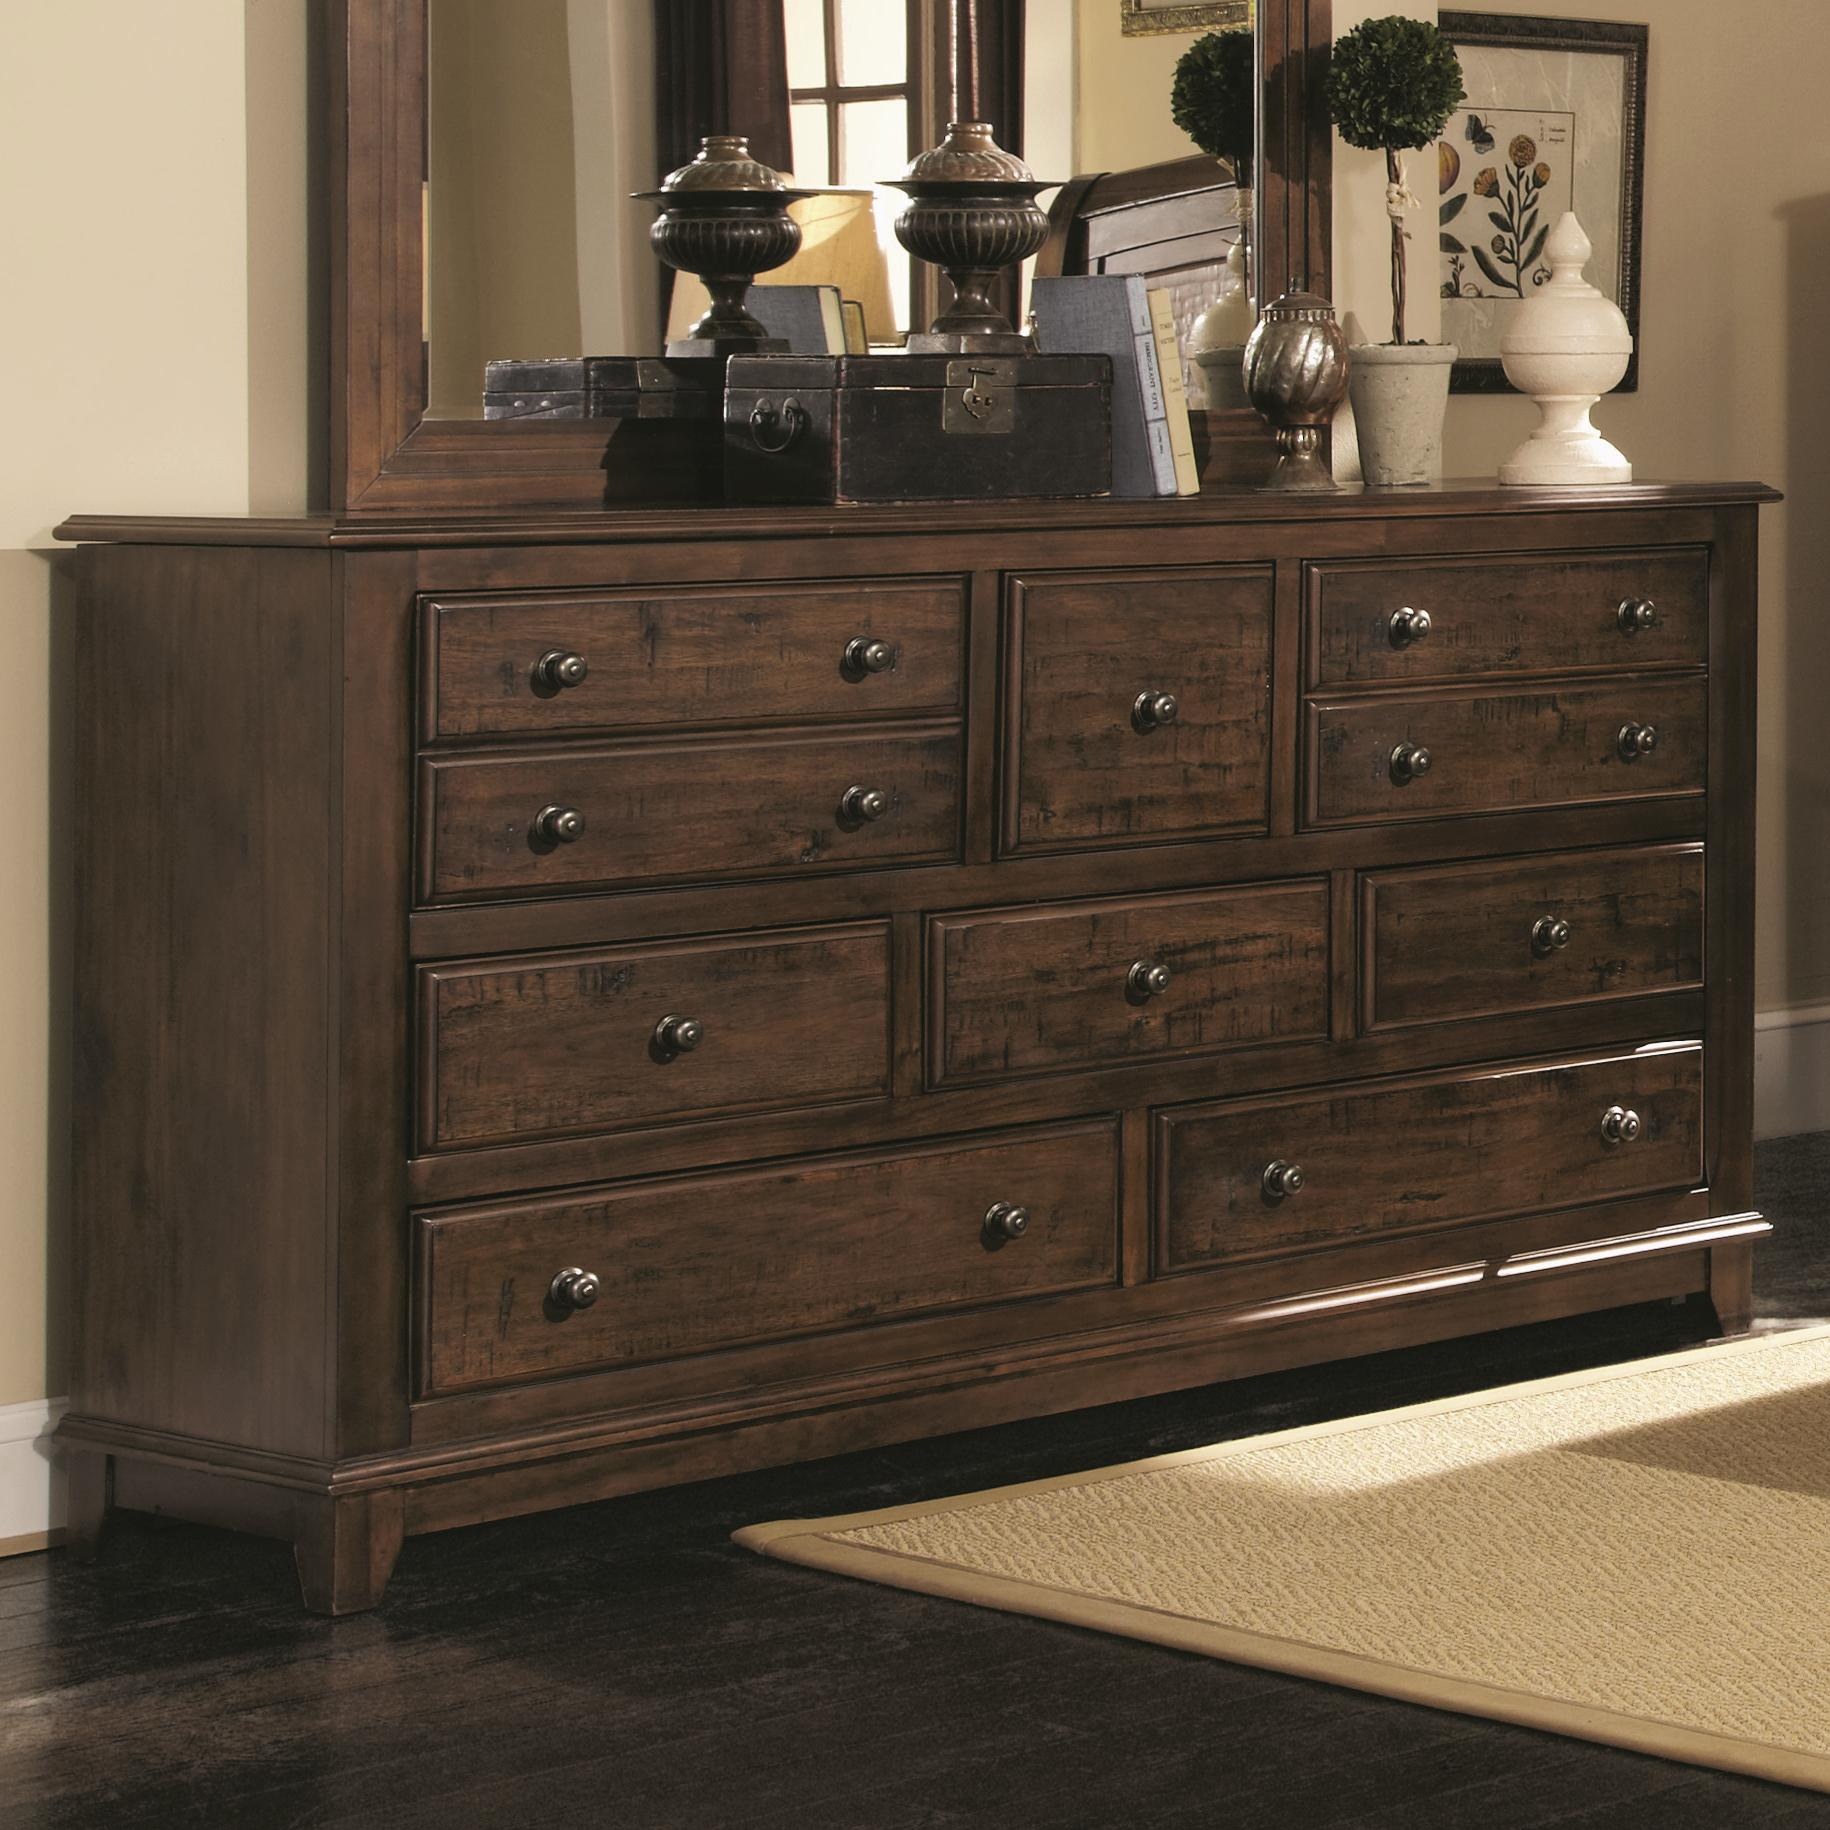 Laughton Casual Dresser With 8 Drawers Quality Furniture At Affordable Prices In Philadelphia